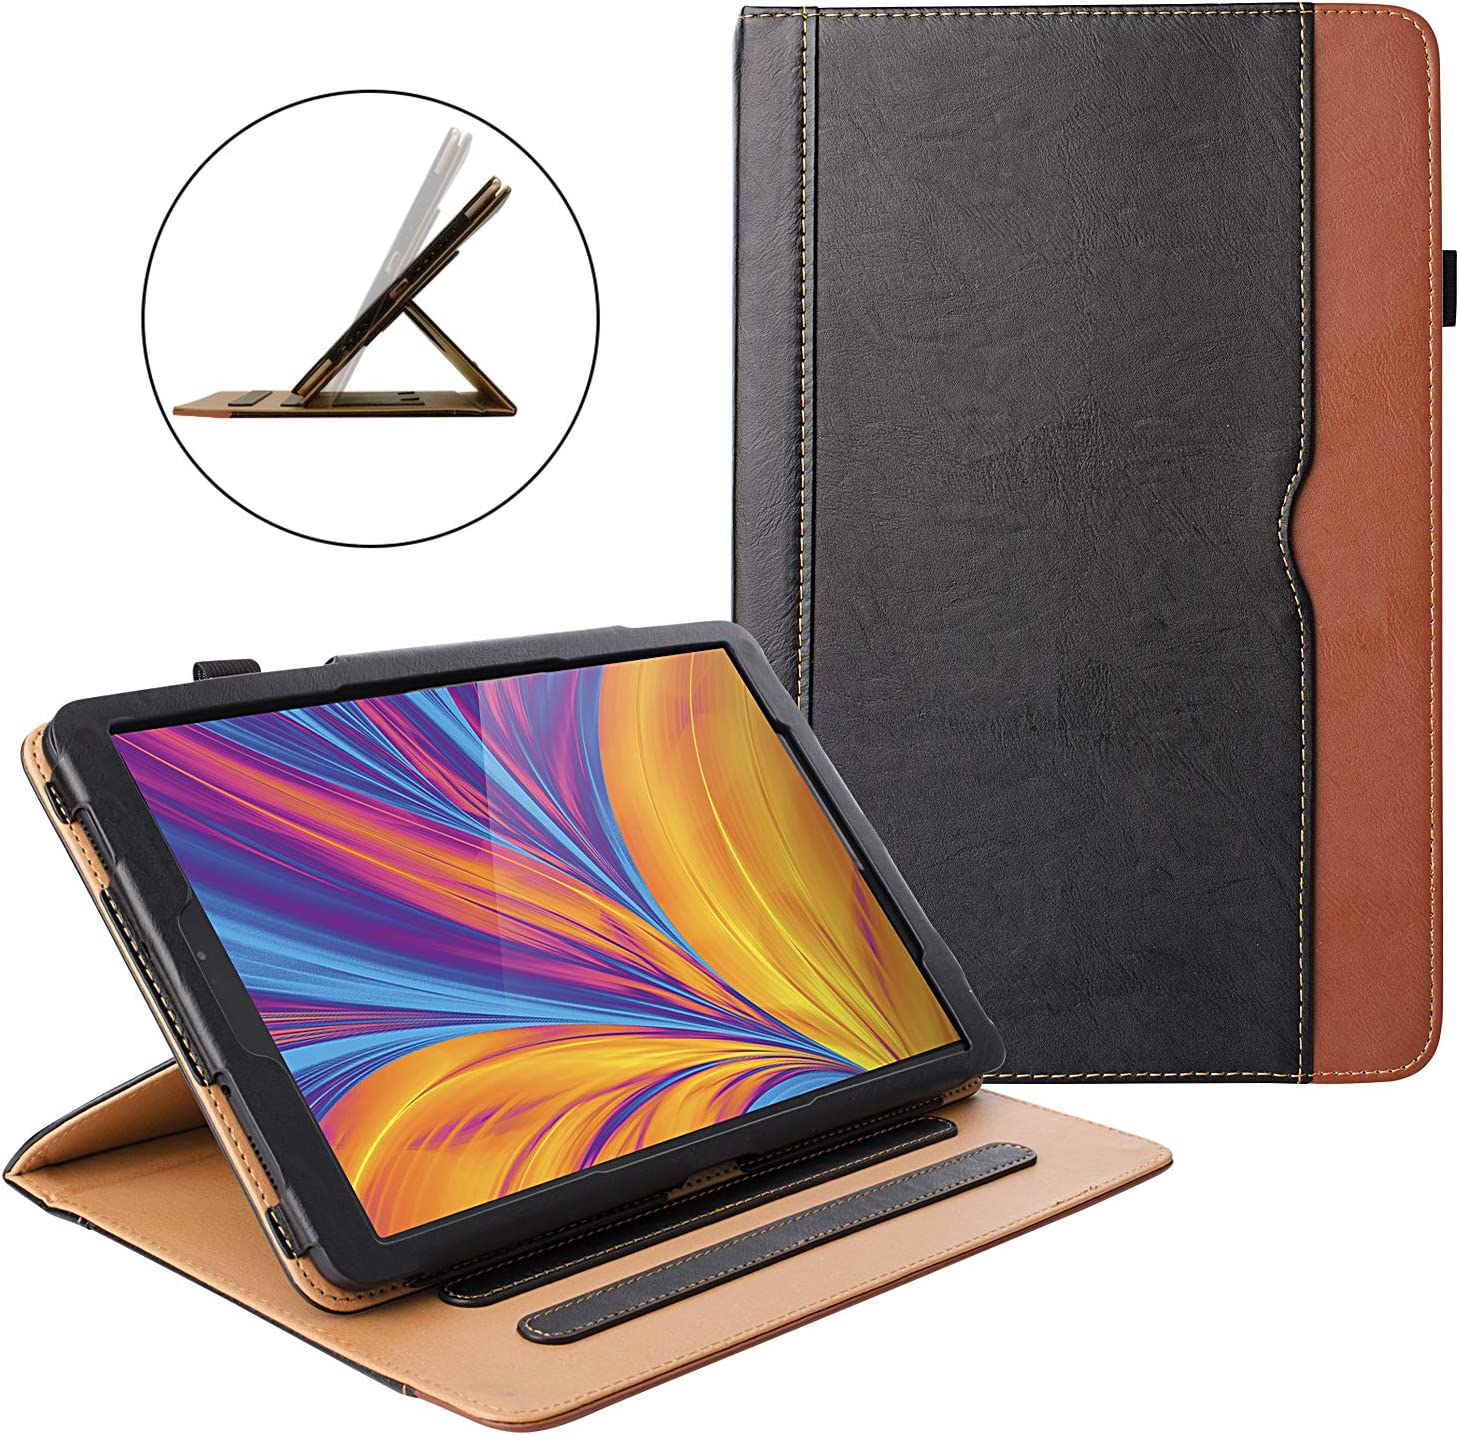 ZoneFoker Galaxy Tab A 10.1 inch 2019 Tablet Leather Case, 360 Protection Multi-Angle Viewing Folio Stand Cases with Pencil Holder for Samsung Galaxy Tab A 10.1 SM-T510/SM-T515 - Black/Brown